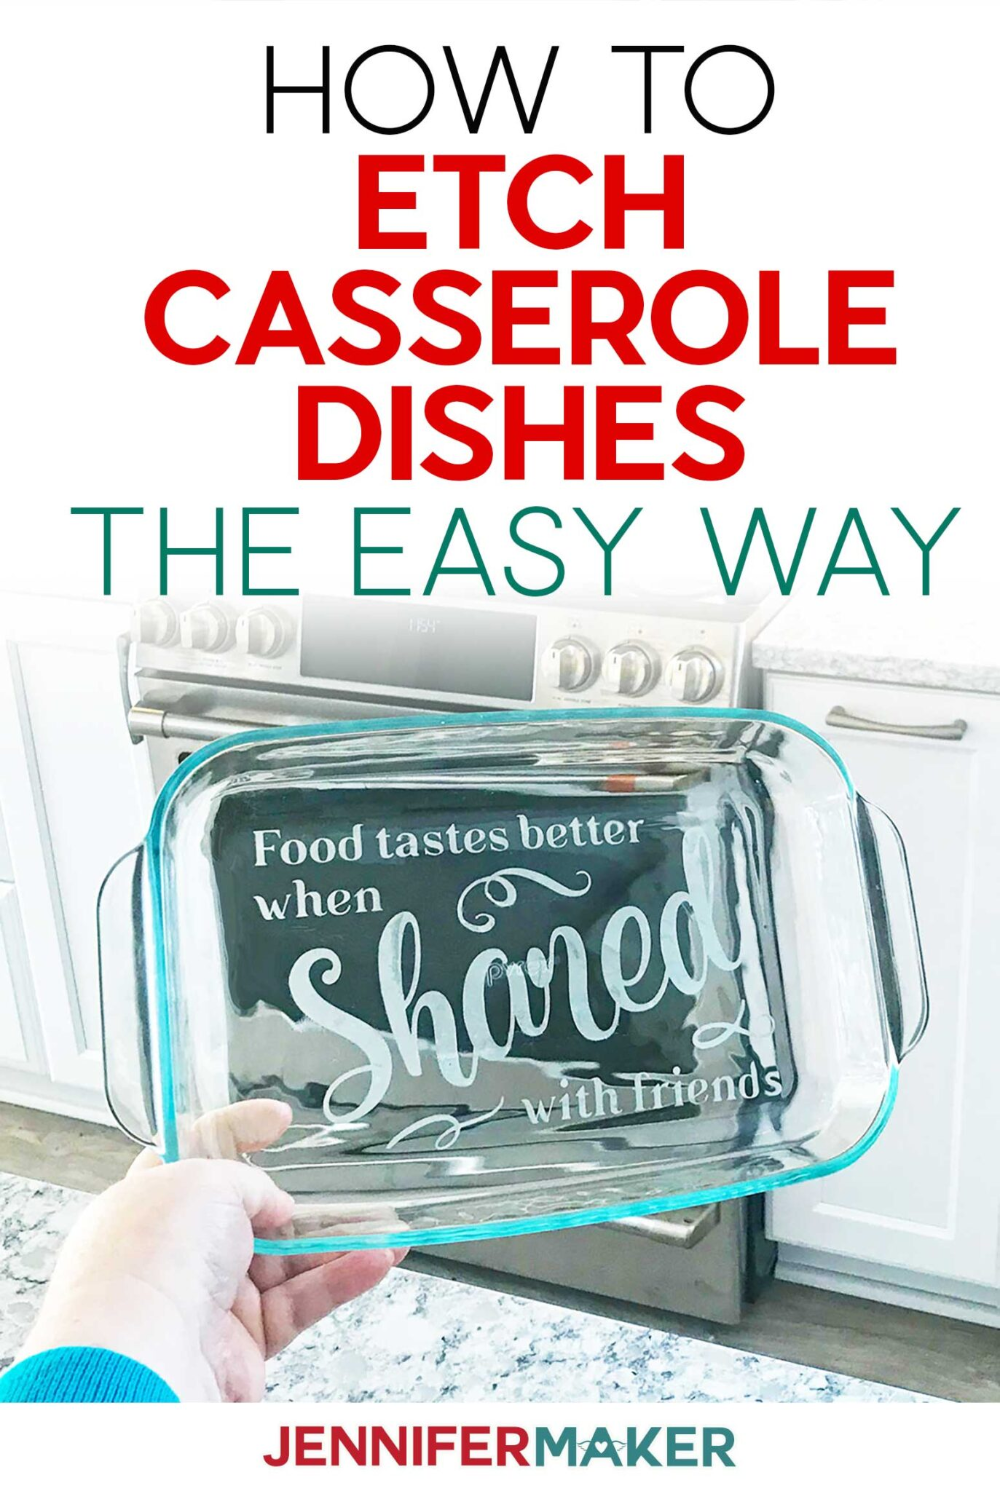 Diy Etched Casserole Dish Personalize A Glass Pyrex Jennifer Maker In 2020 Etched Casserole Dish Cricut Stencils Etching Glassware Diy